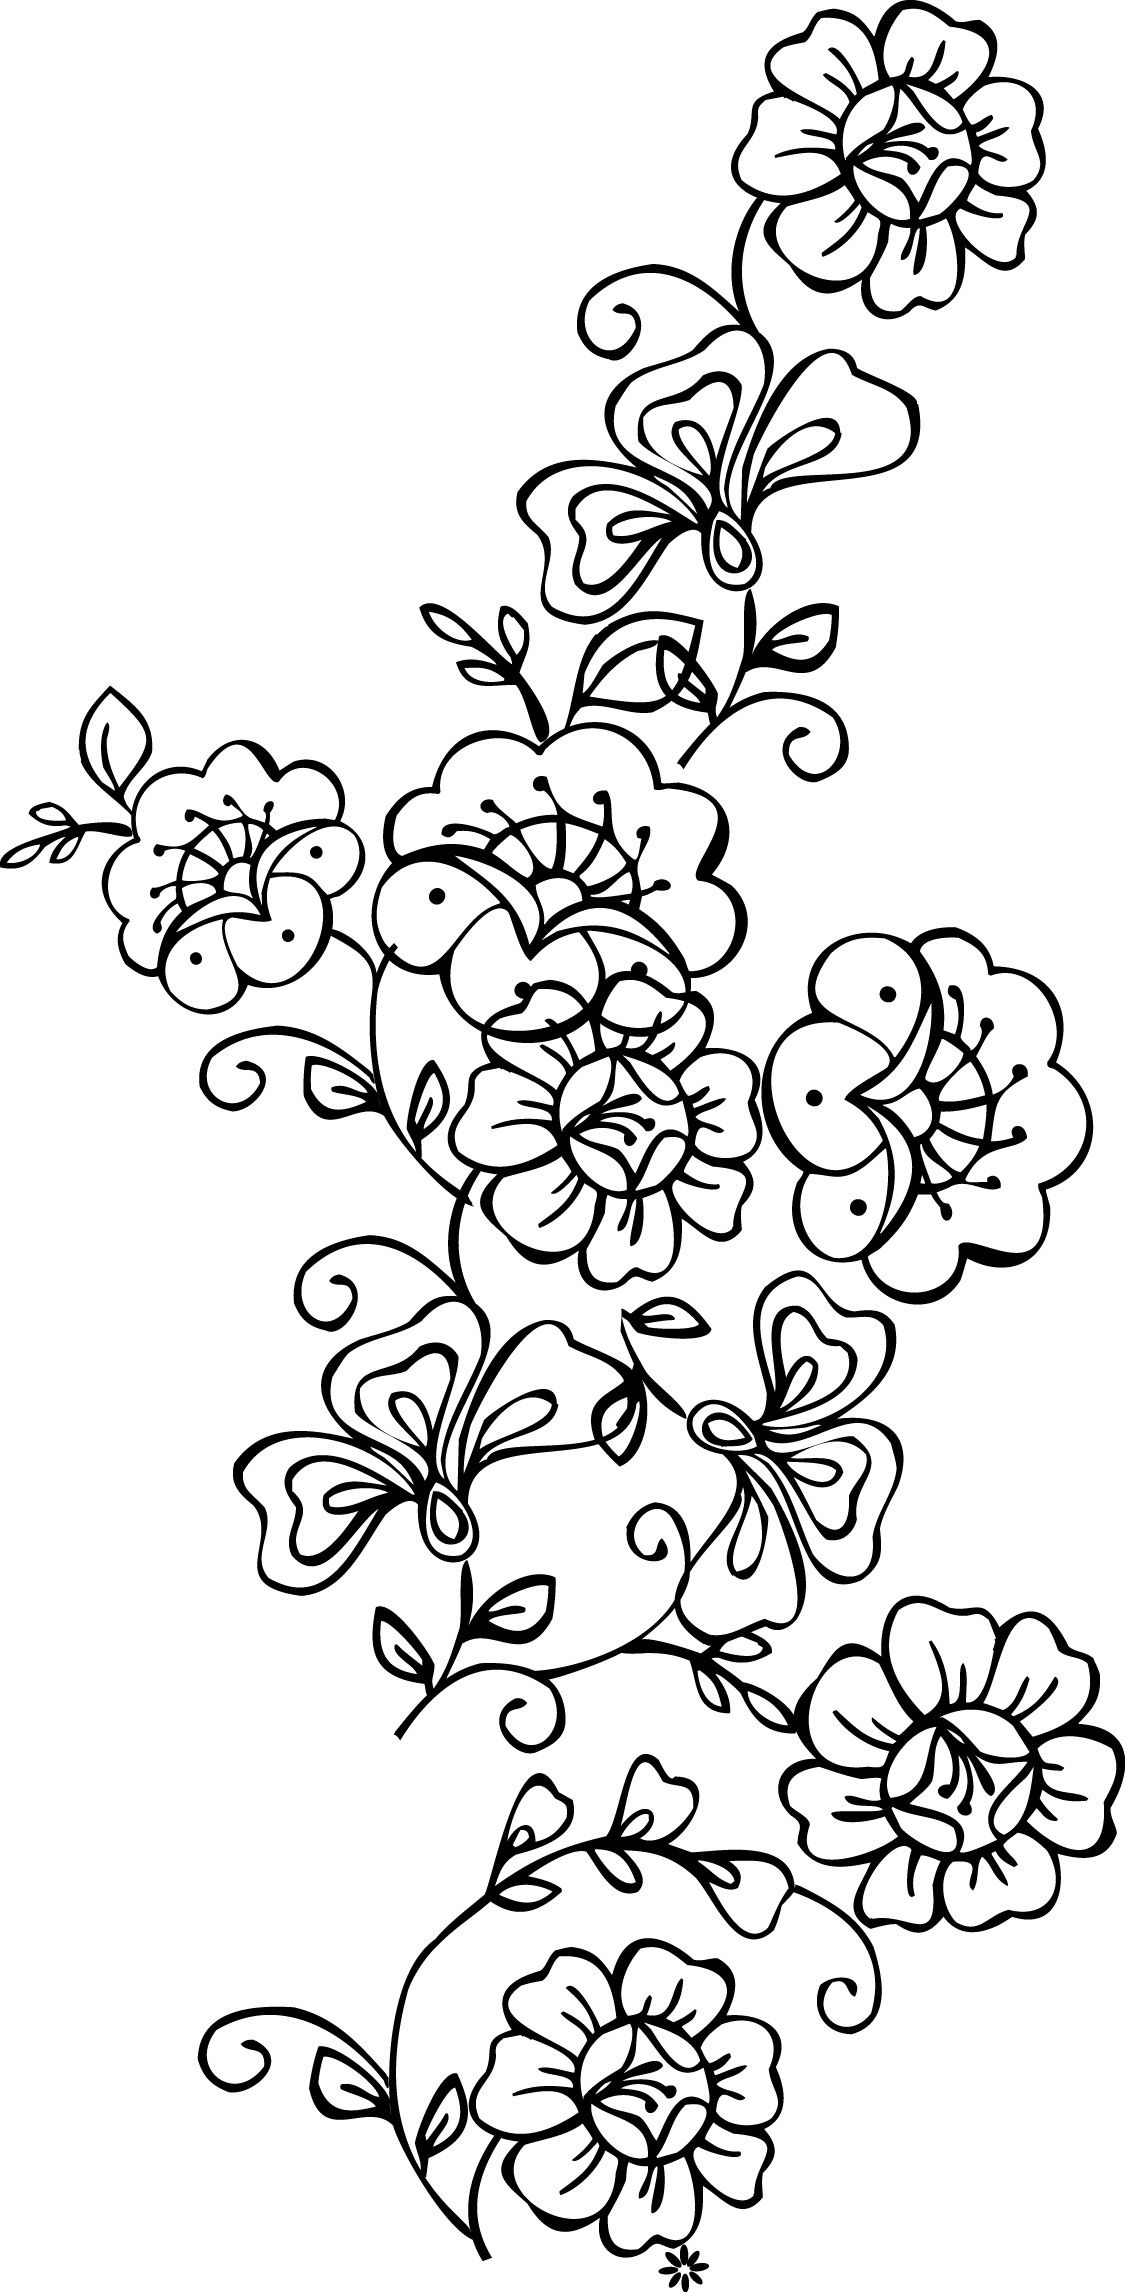 Free Printable Stencils Of Trees   Stencils Designs Free Printable - Free Printable Wall Stencils For Painting